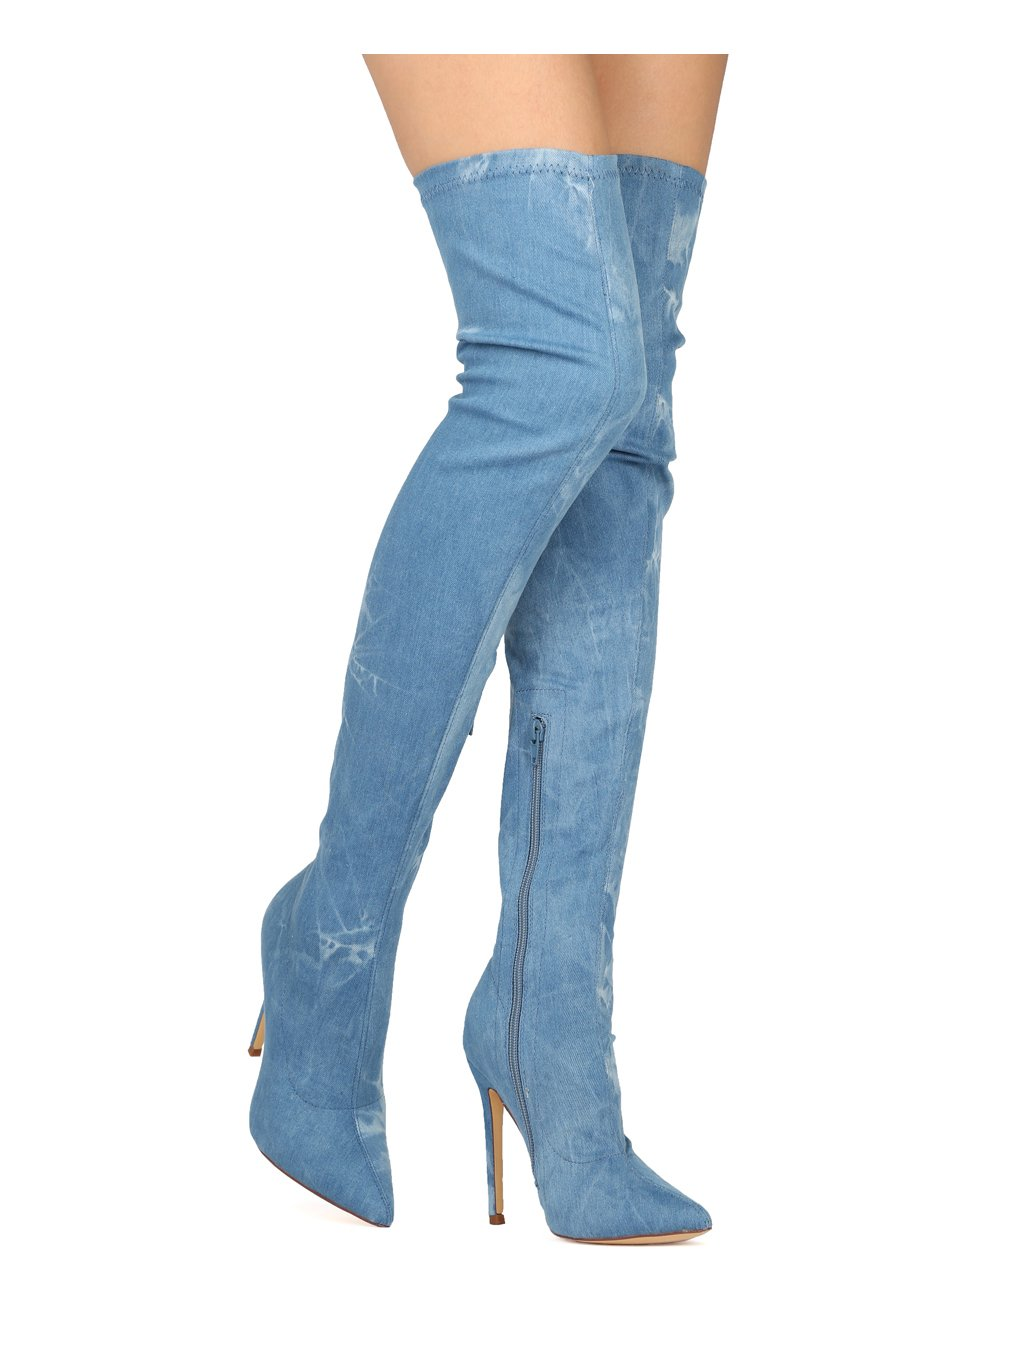 Liliana Women Thigh High Pointy Toe Stiletto Boot HE09 - Washed Denim (Size: 9.0)